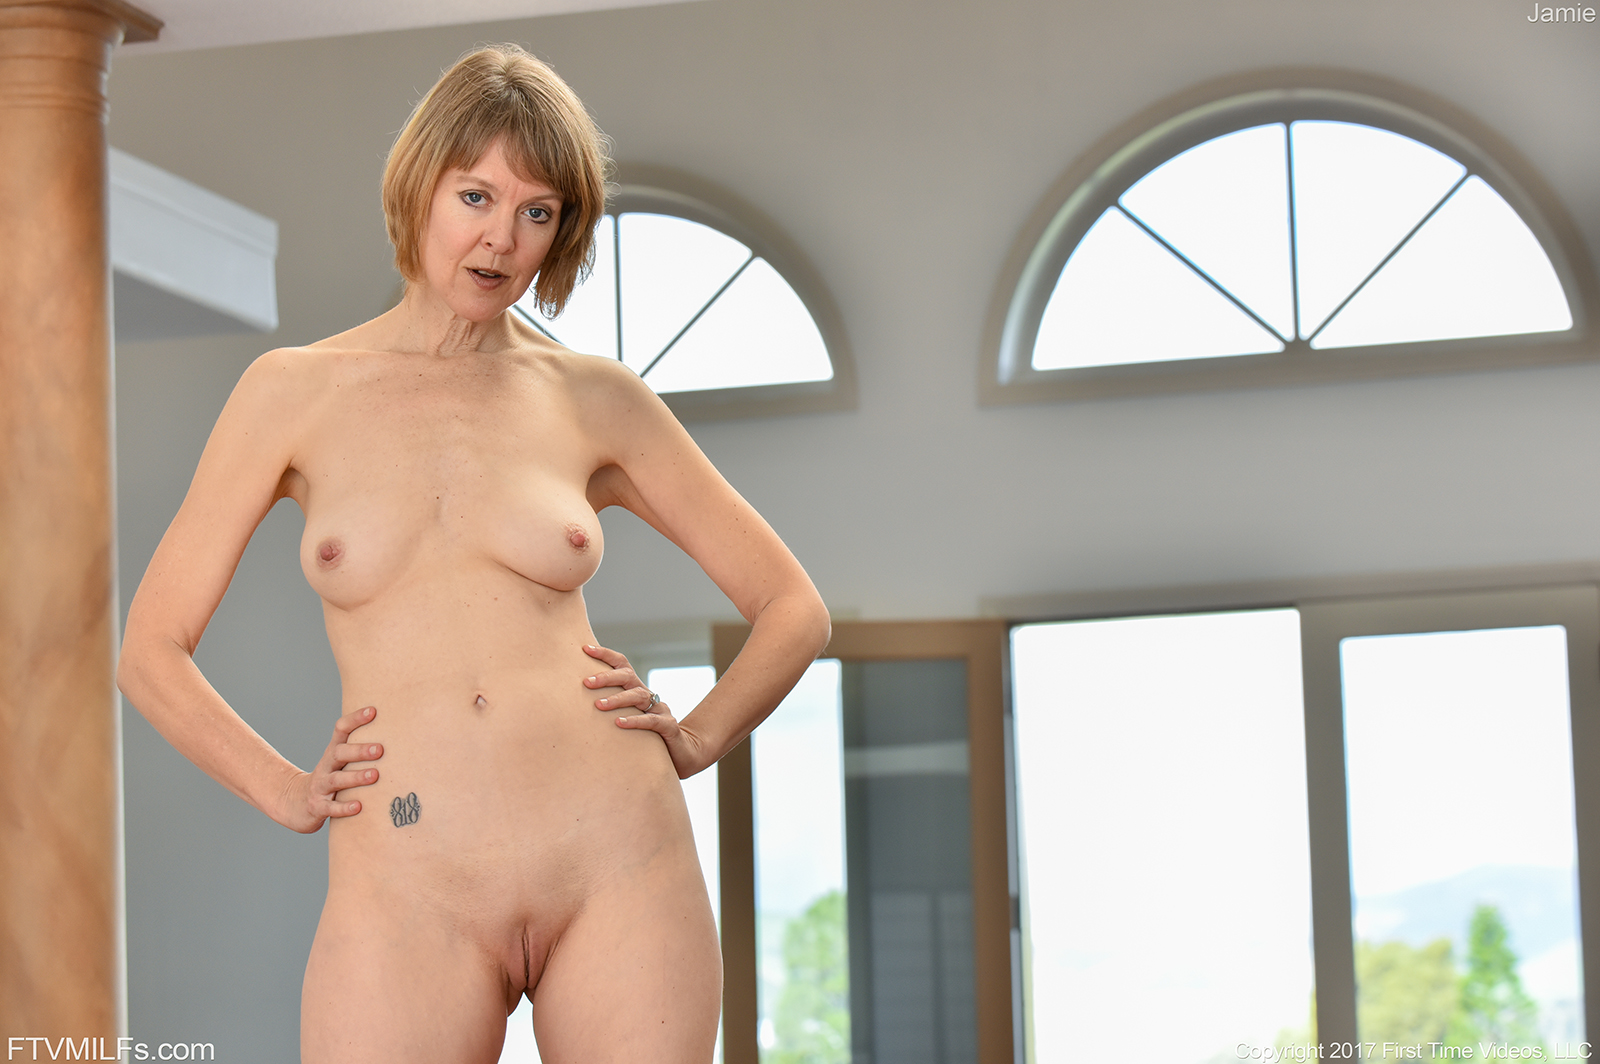 sexy naked women having fun at home alone